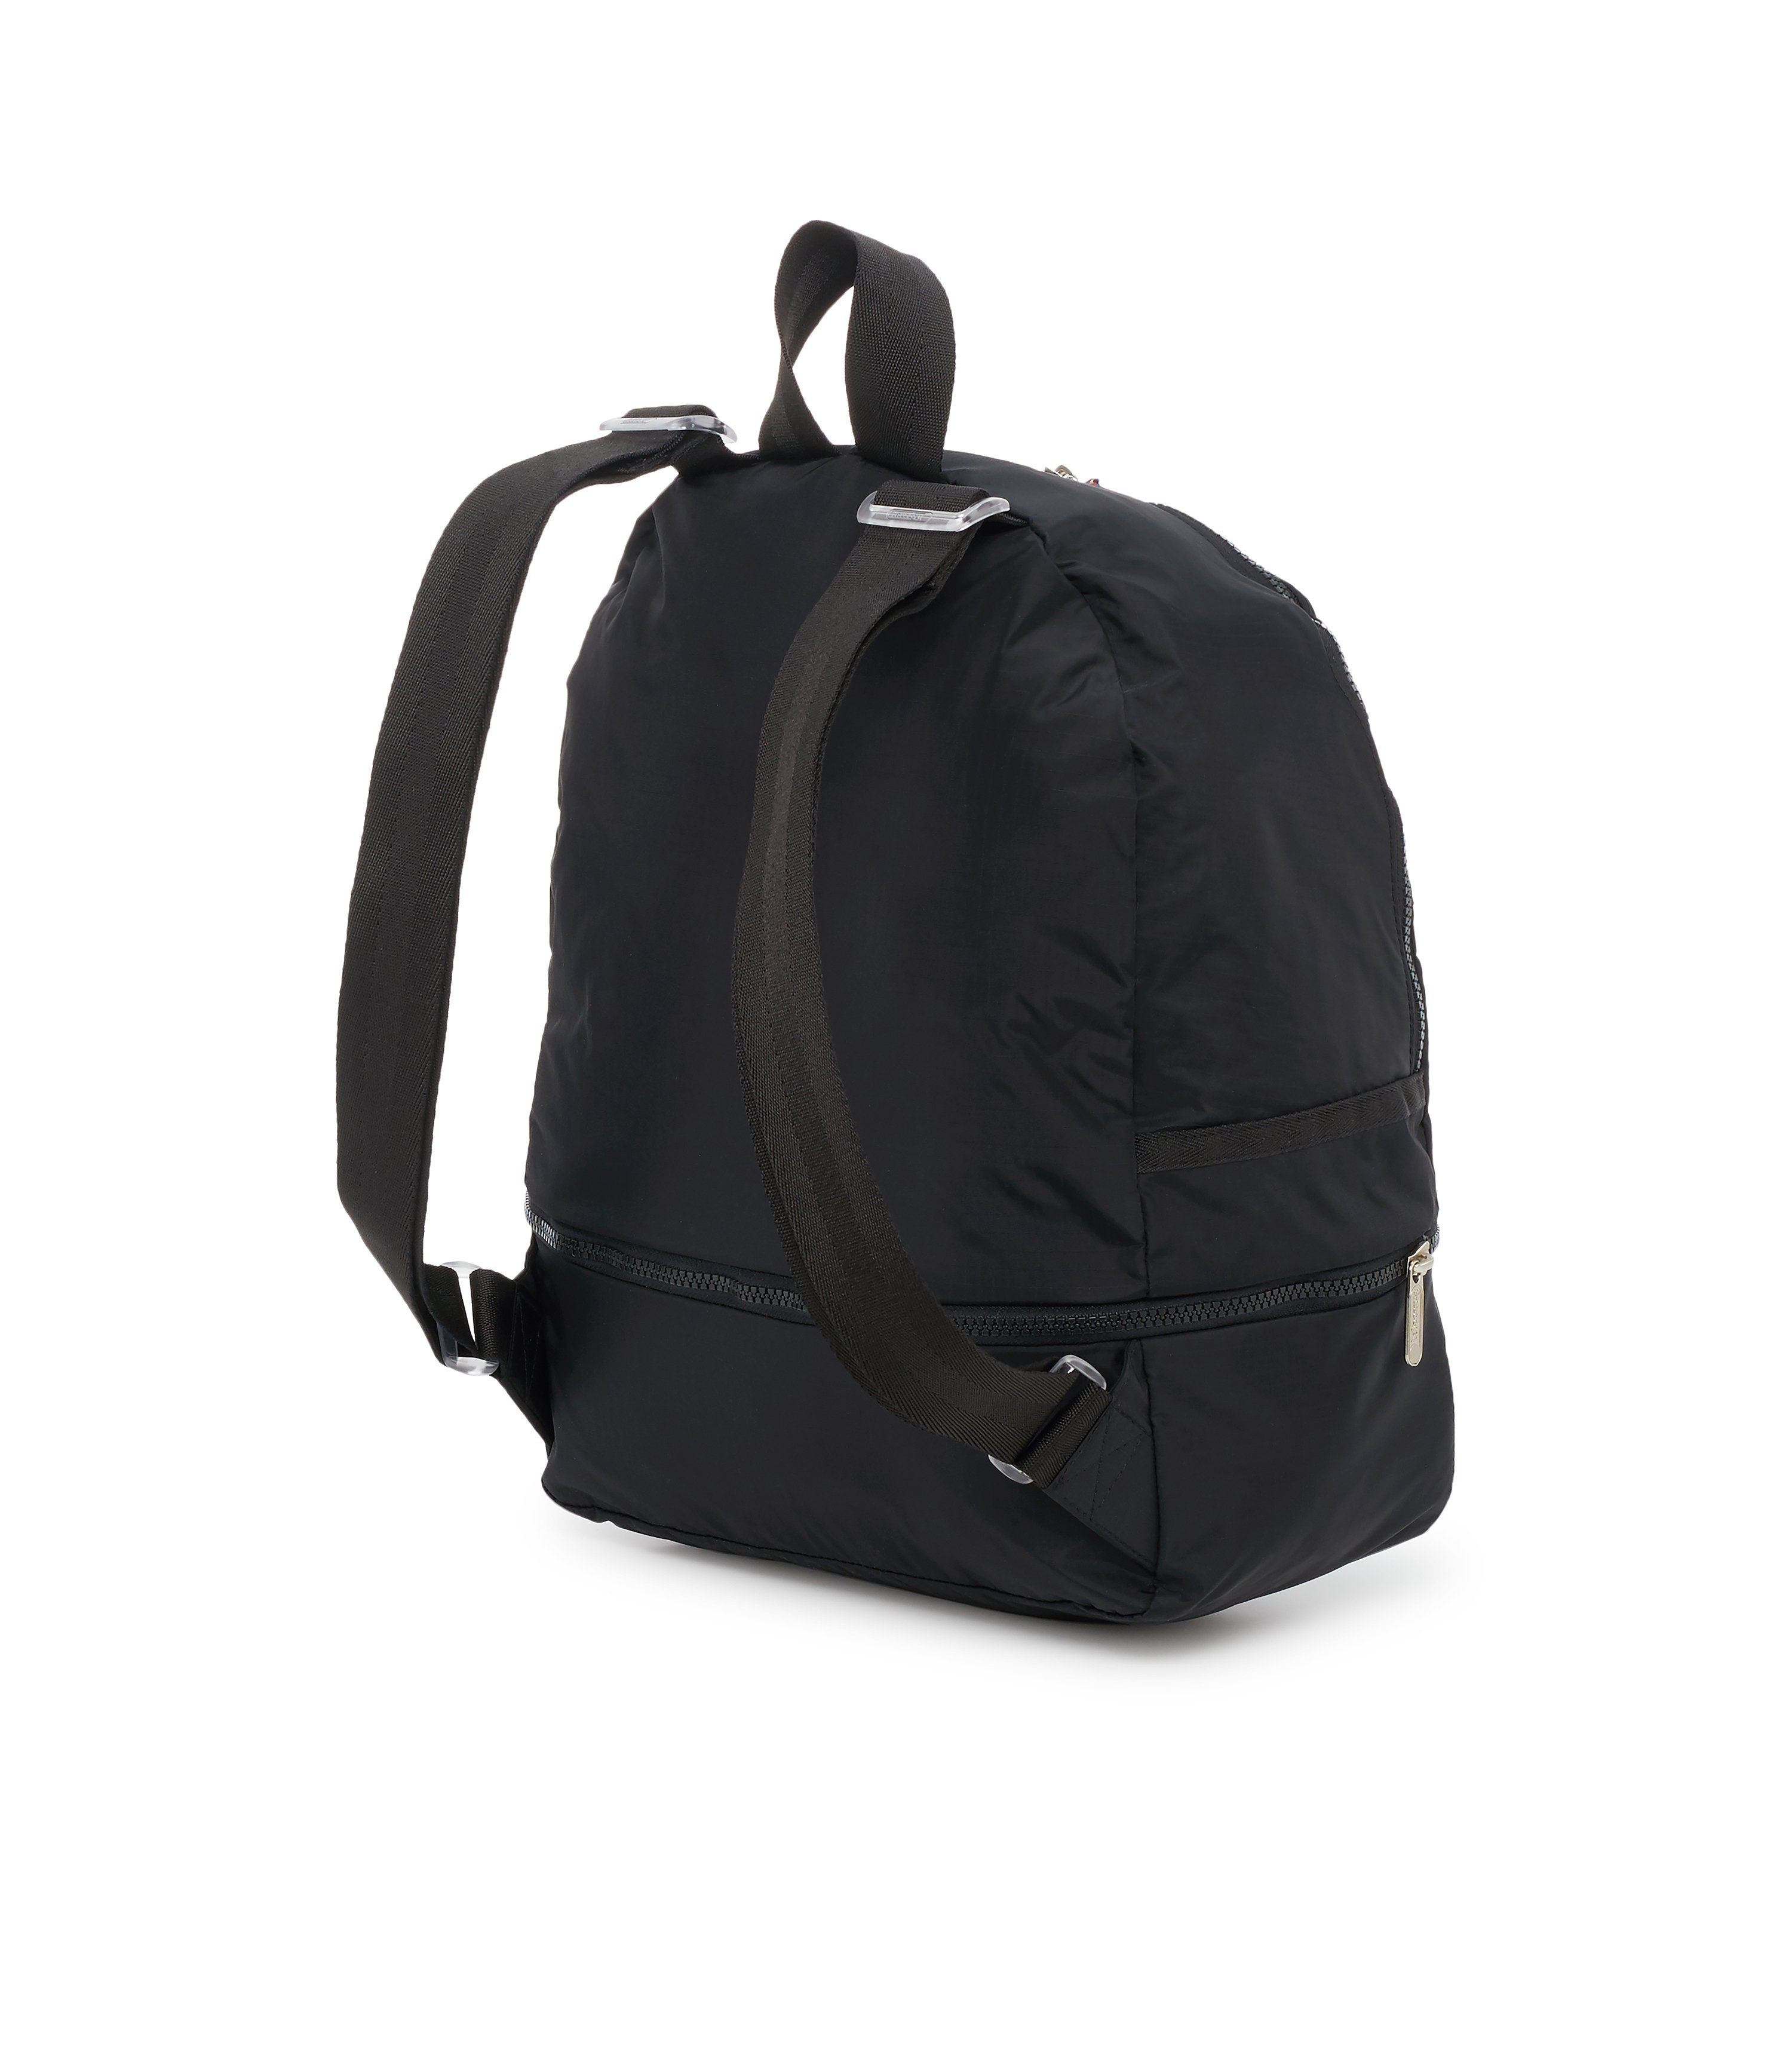 Expandable Backpack 5